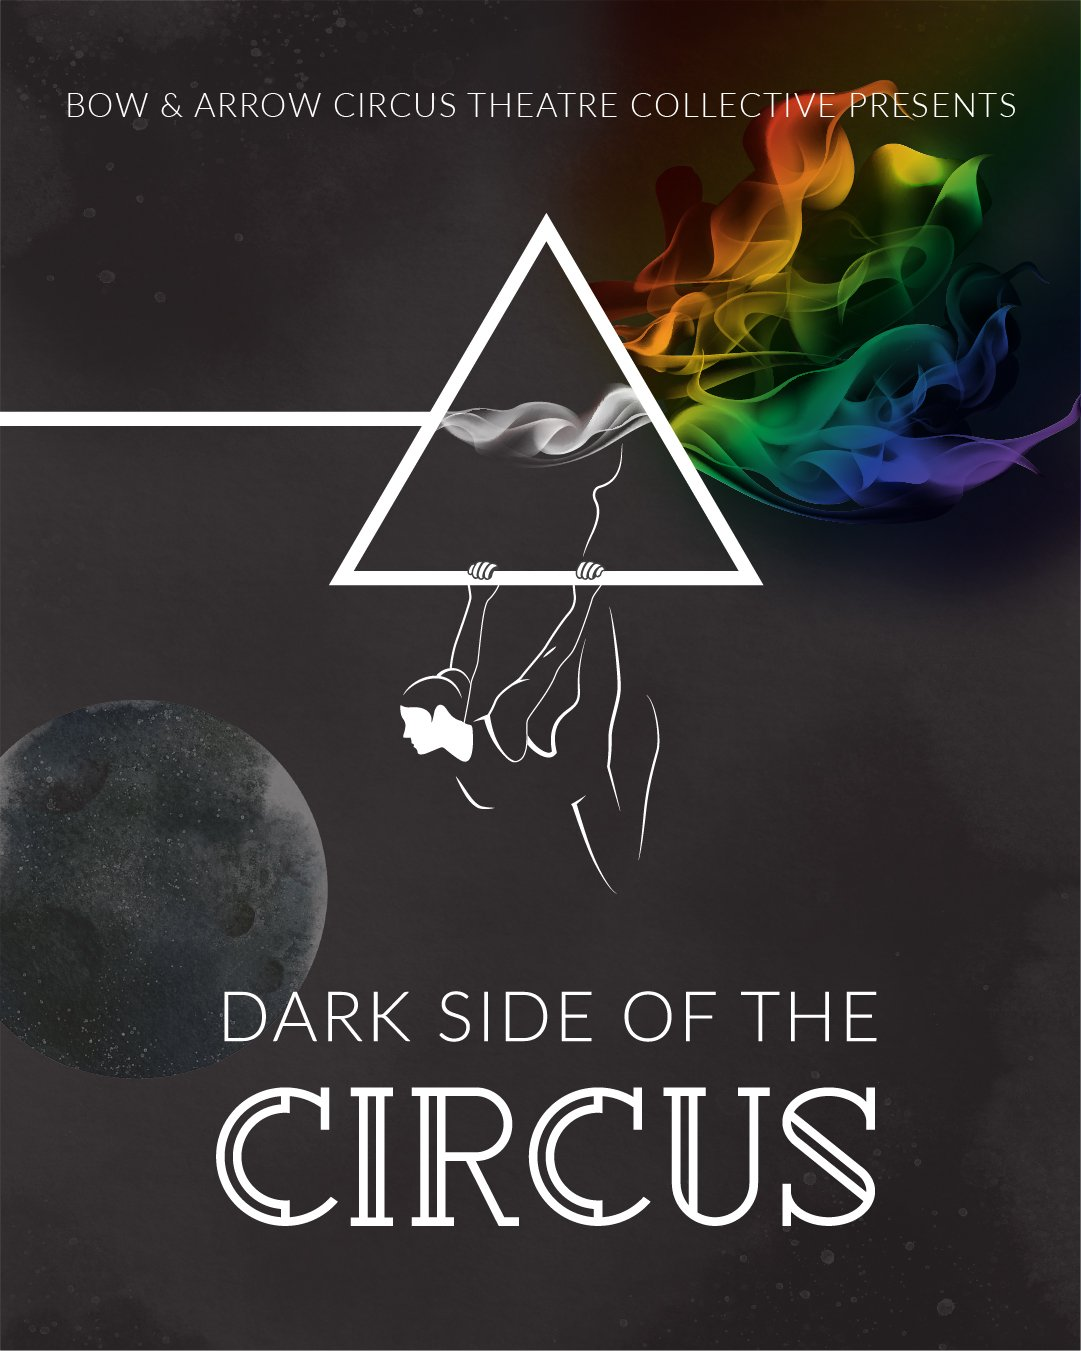 April 3-5: The Dark Side of the Circus – POSTPONED